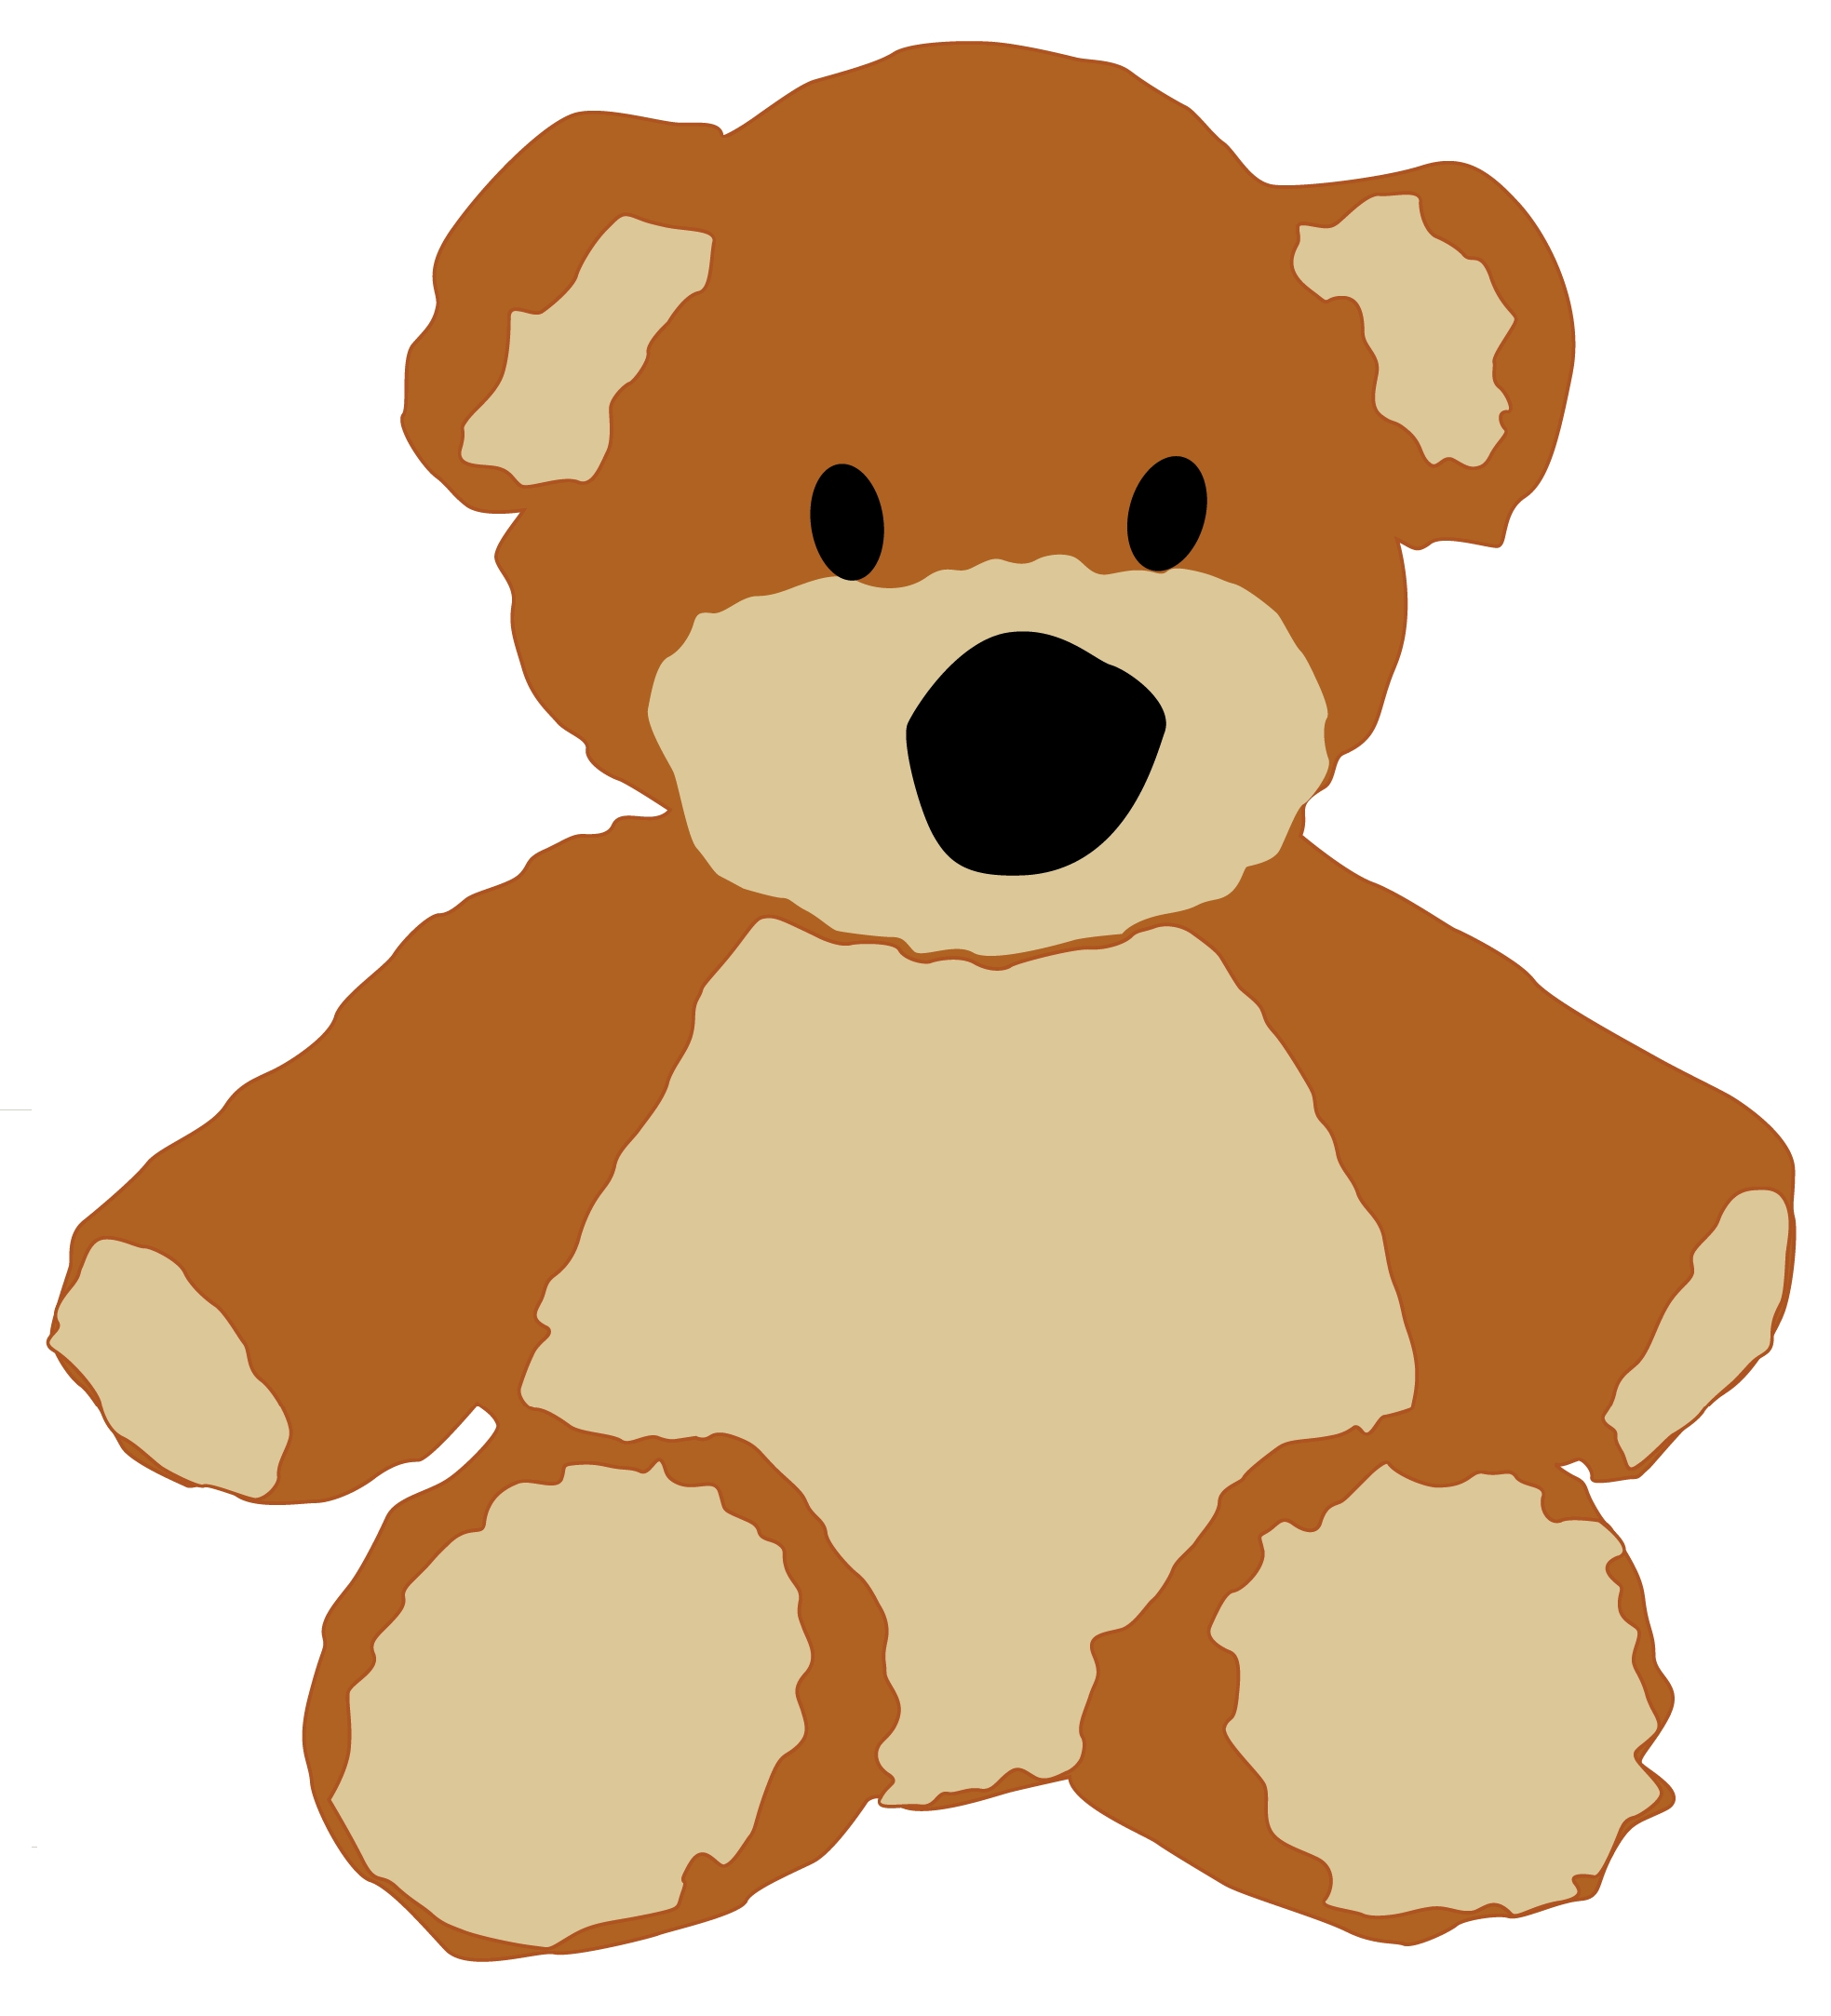 Teddy Free Images At Clker Com Vector Clip Art Online Royalty